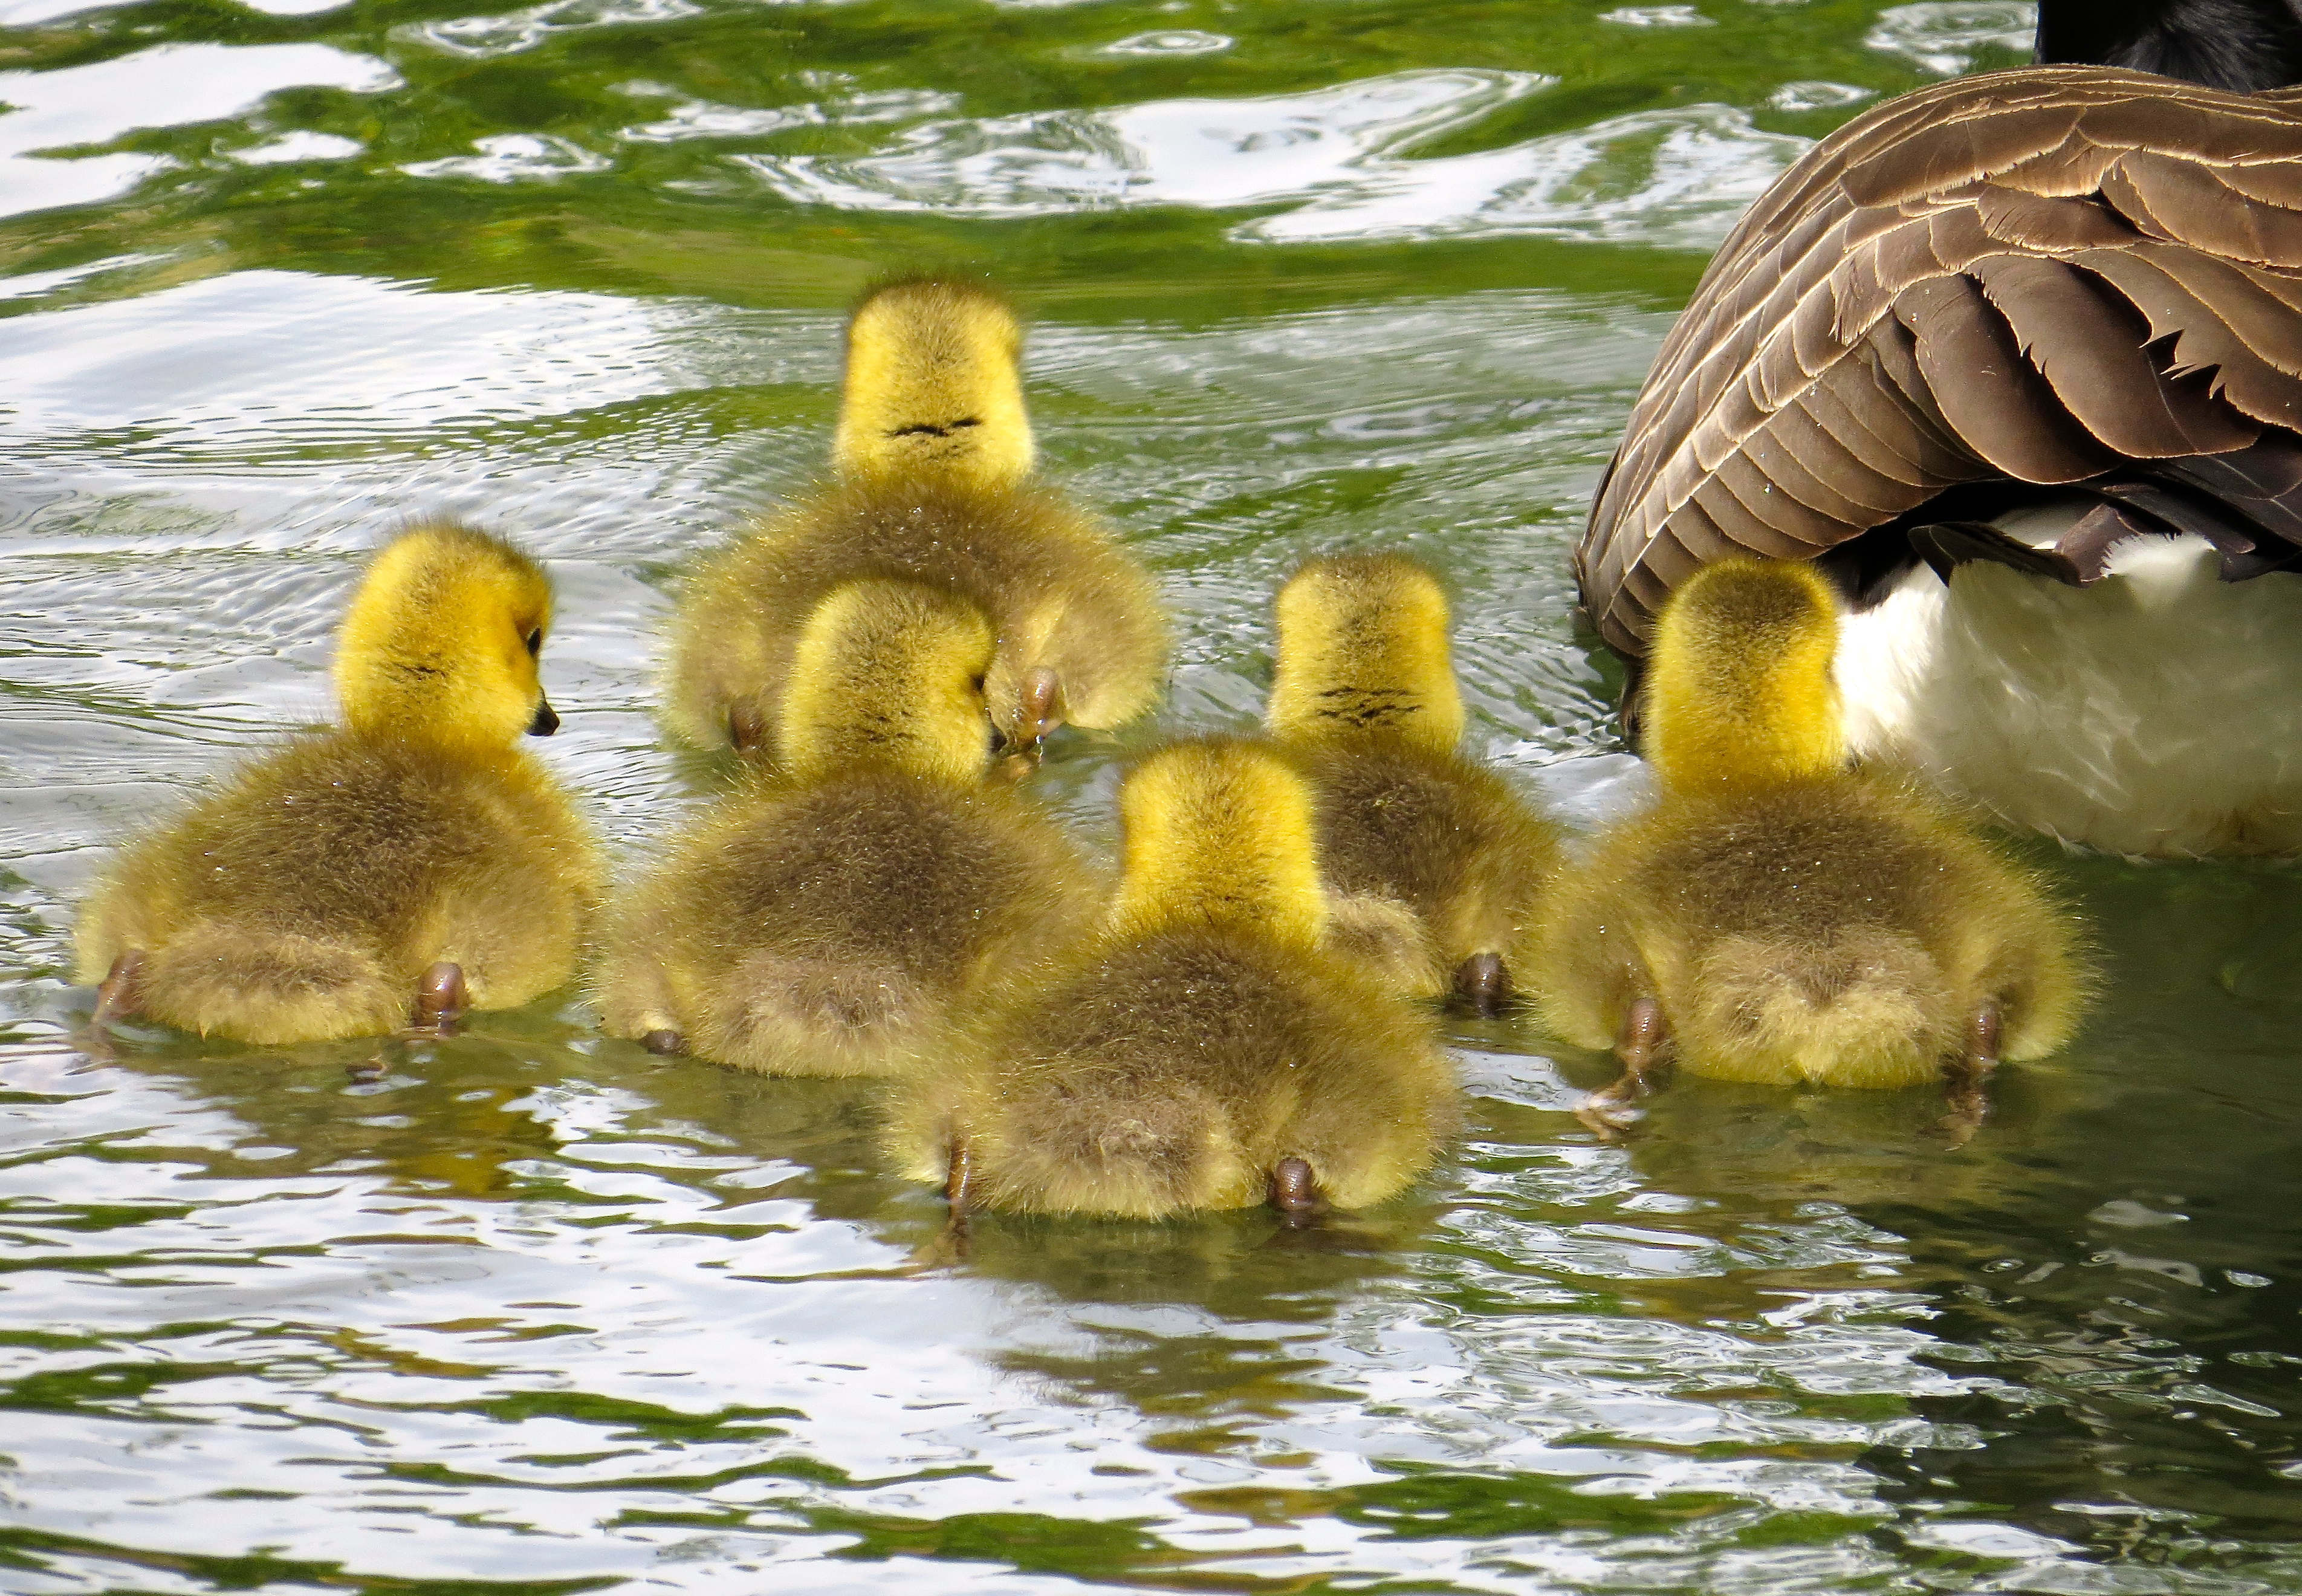 Ahhhhhhh…..goslings, though they didn't seem to want to have anything to do with me!